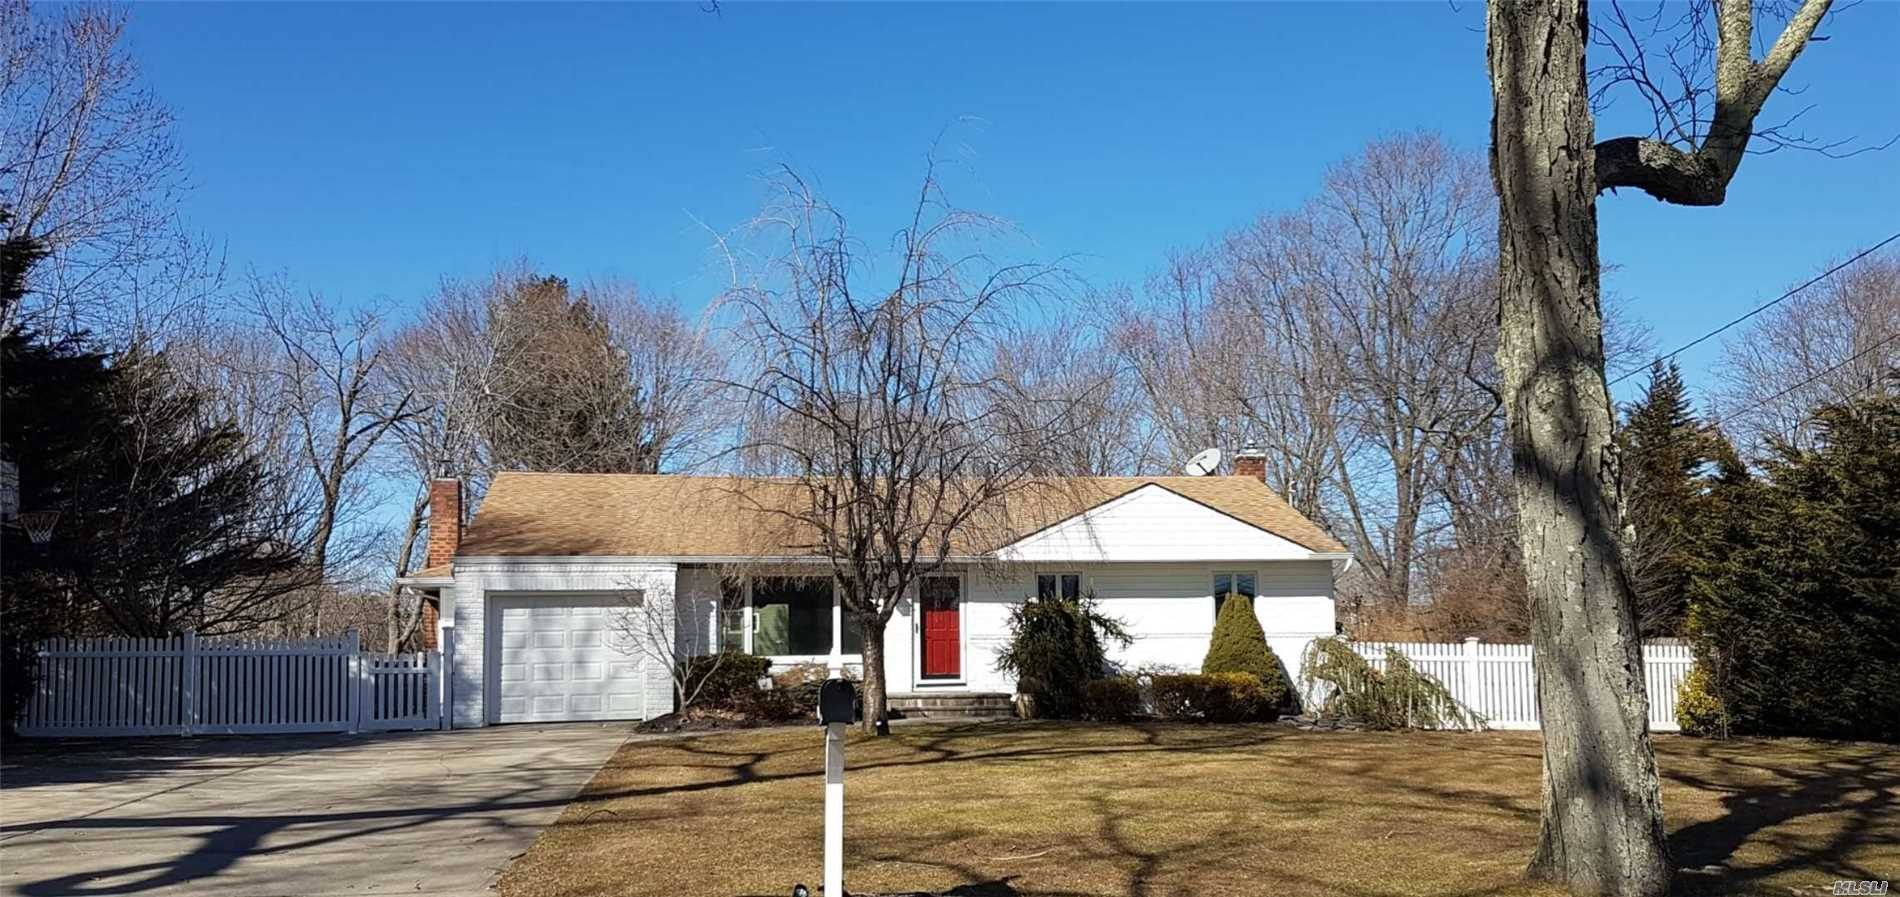 Stunning Expanded 4 Bedroom Ranch On Half Acre Lot In Commack Sd. Open Floor Plan. New Custom Kitchen W/ Farm Sink. Large Island. Granite Counter Top. New Ss Appl. Master Suite W/ Full Bth. Gleaming Hardwood Floors. Updated Finished Basement.